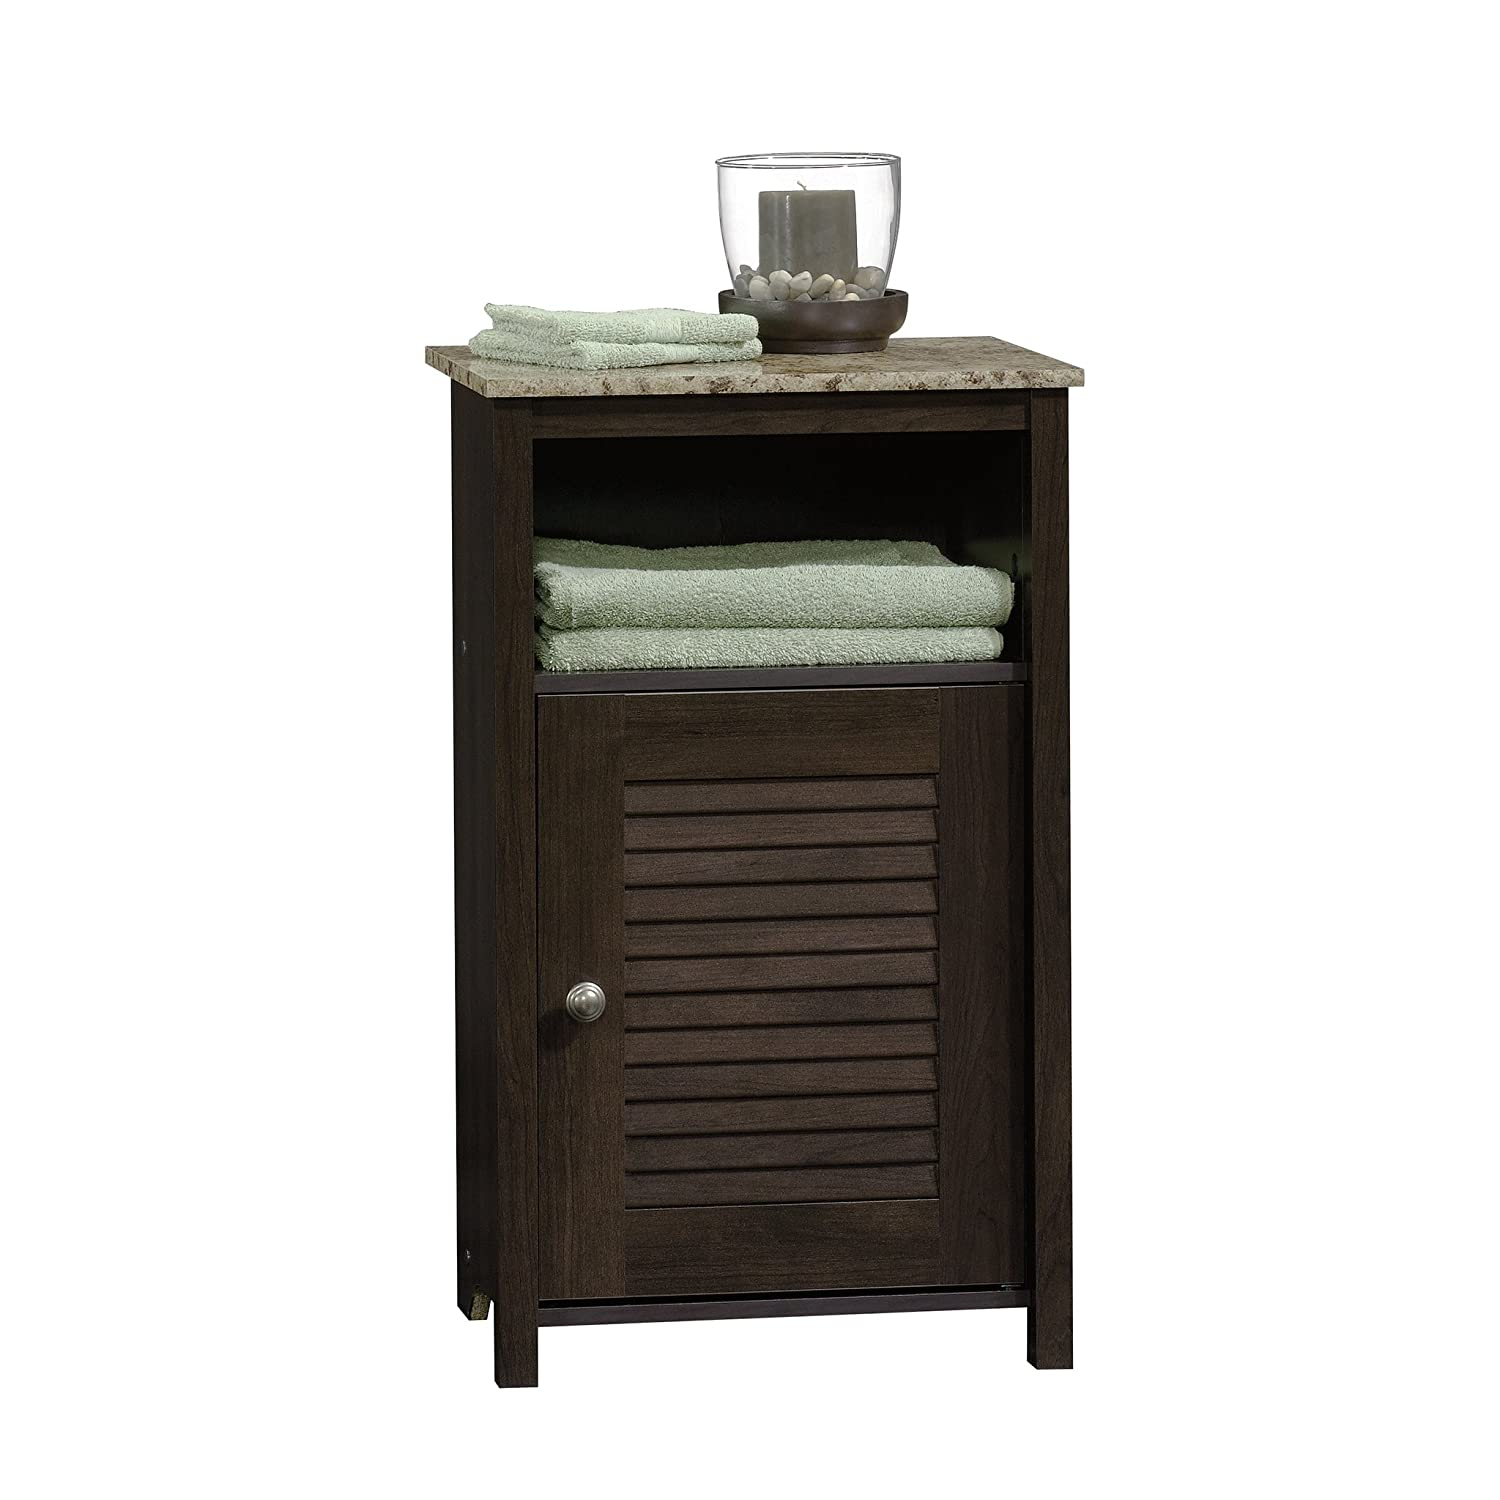 Sauder Peppercorn Floor Cabinet, Cinnamon Cherry Finish 414031